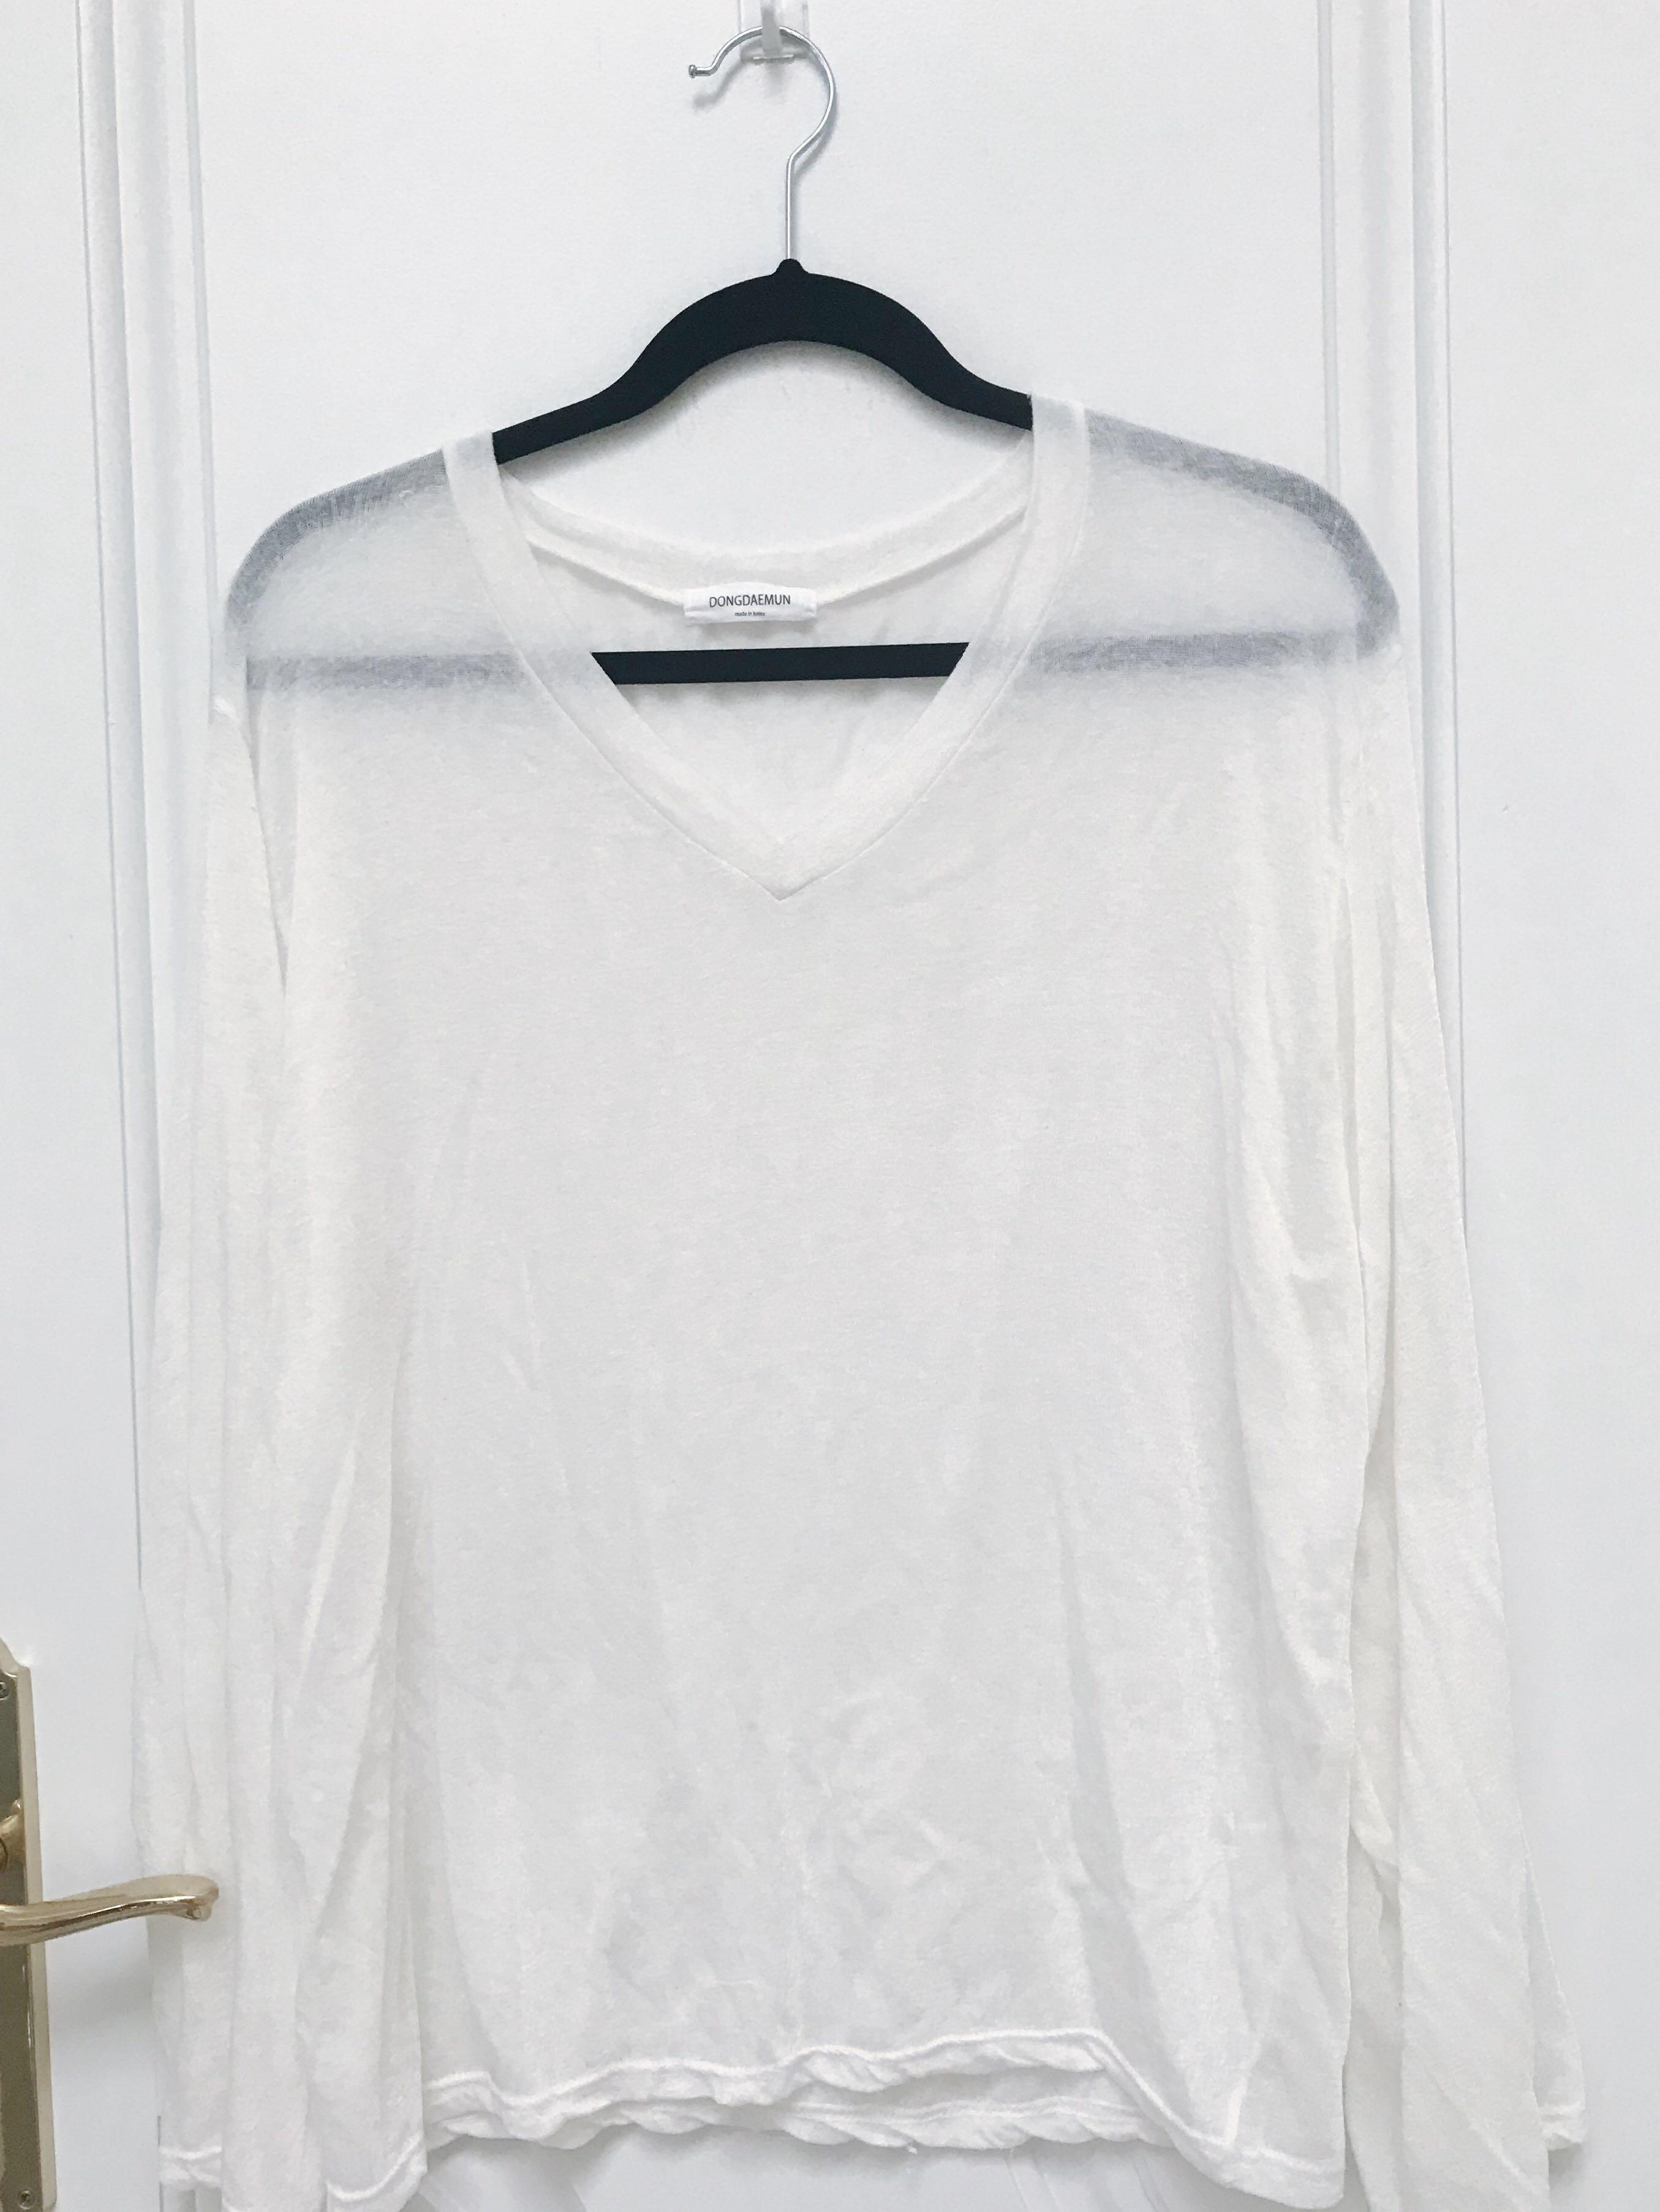 Long sleeve v neck see through top bell sleeves ONE SIZE